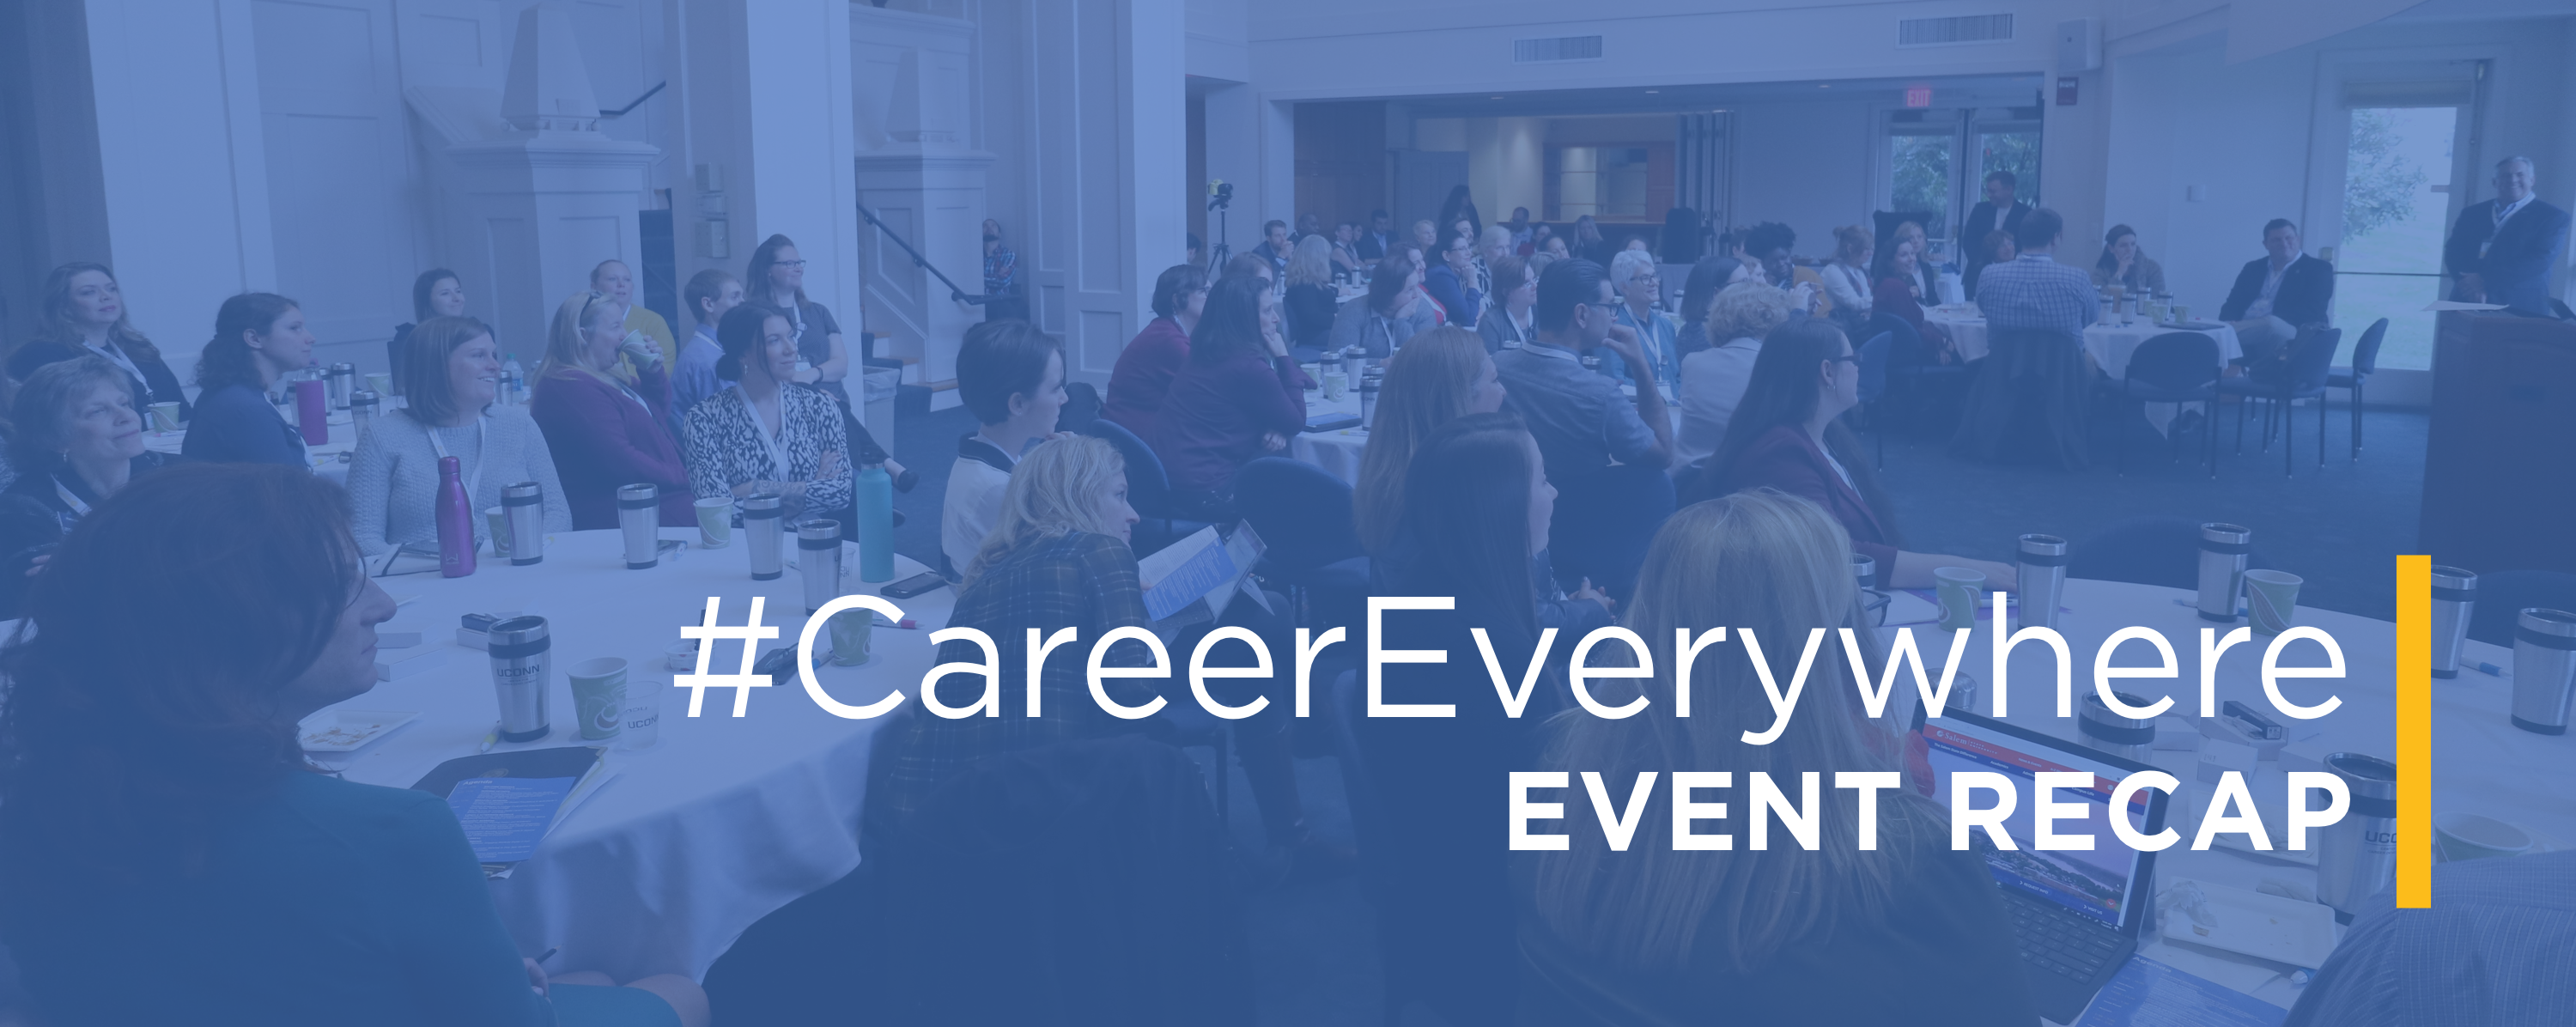 CareerEverywhere Recap Blog Header